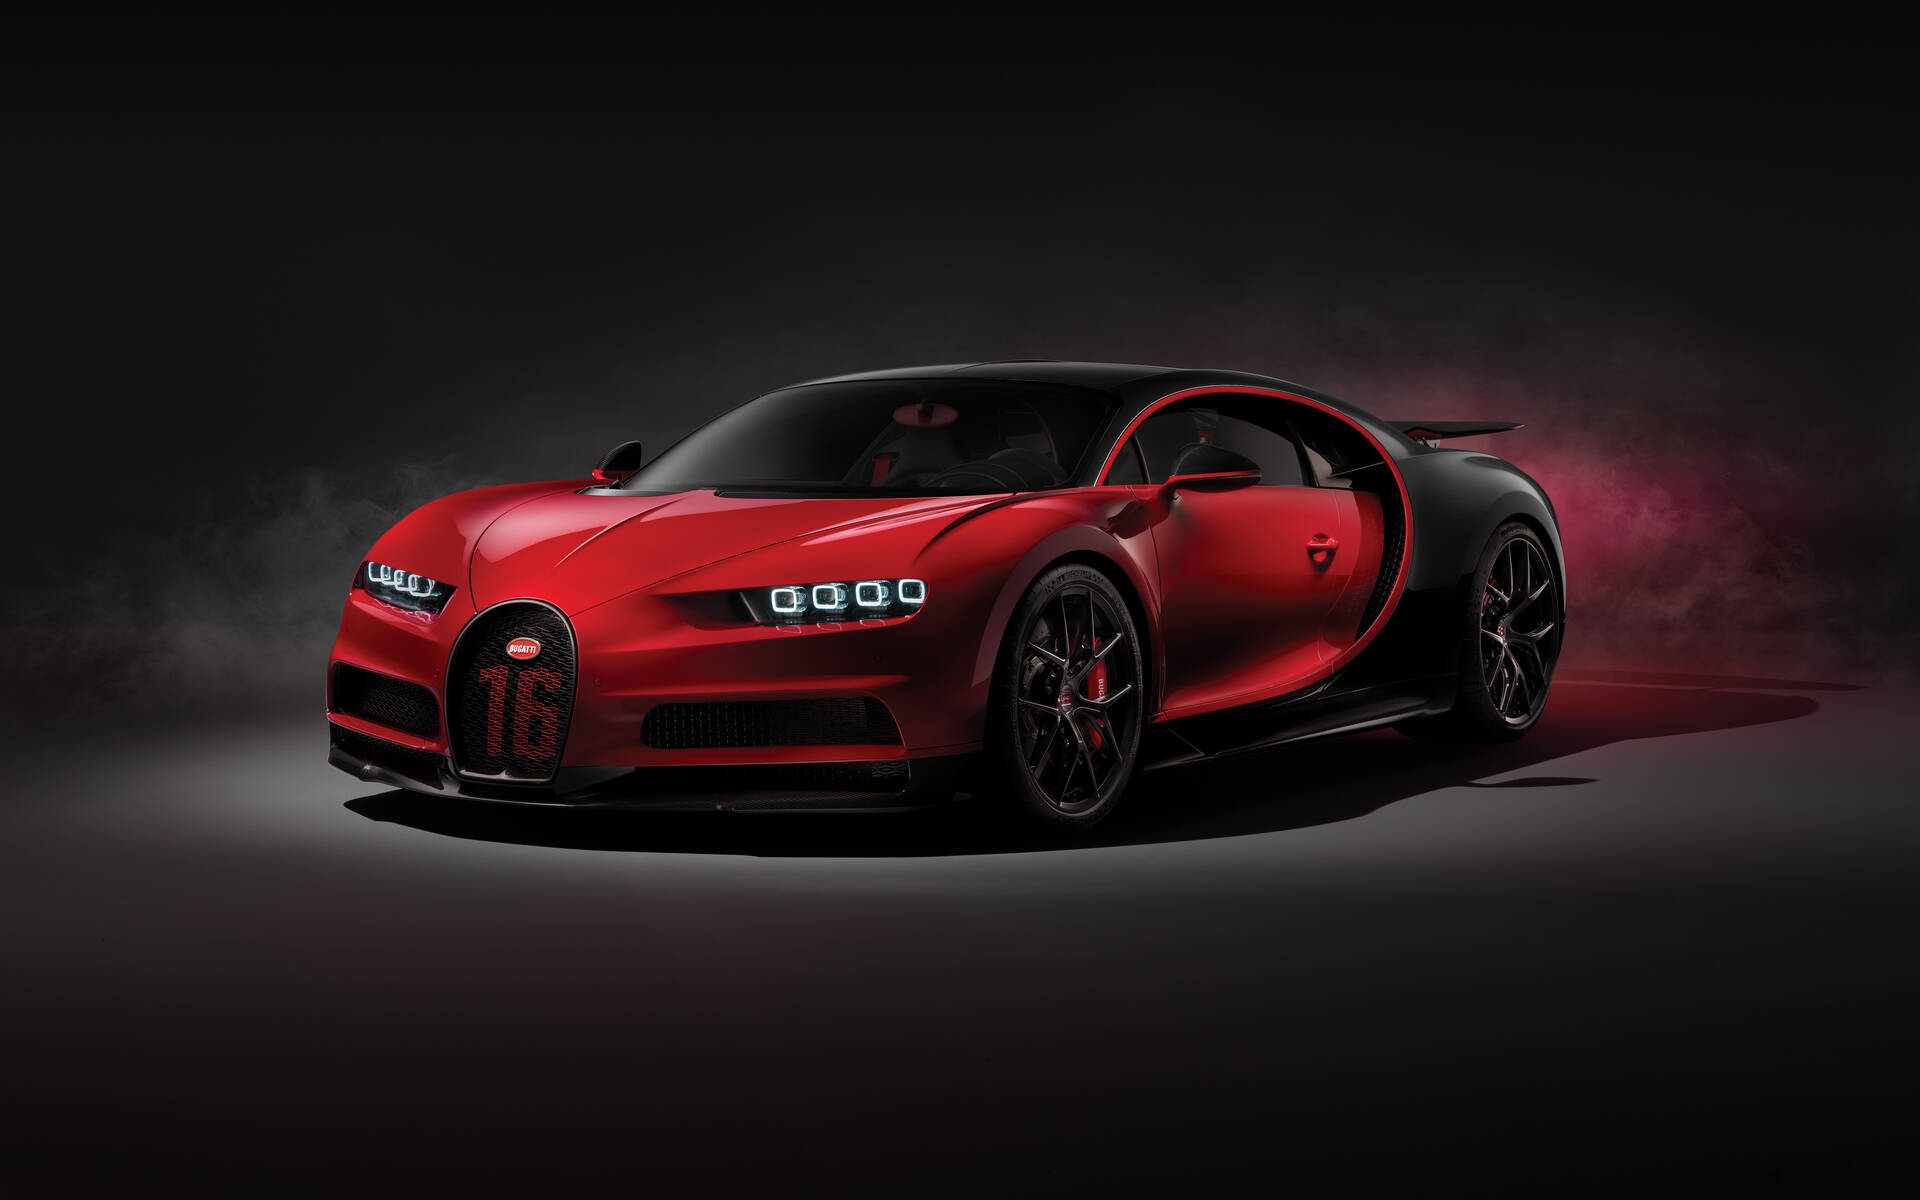 2021 Bugatti Chiron News Reviews Picture Galleries And Videos The Car Guide